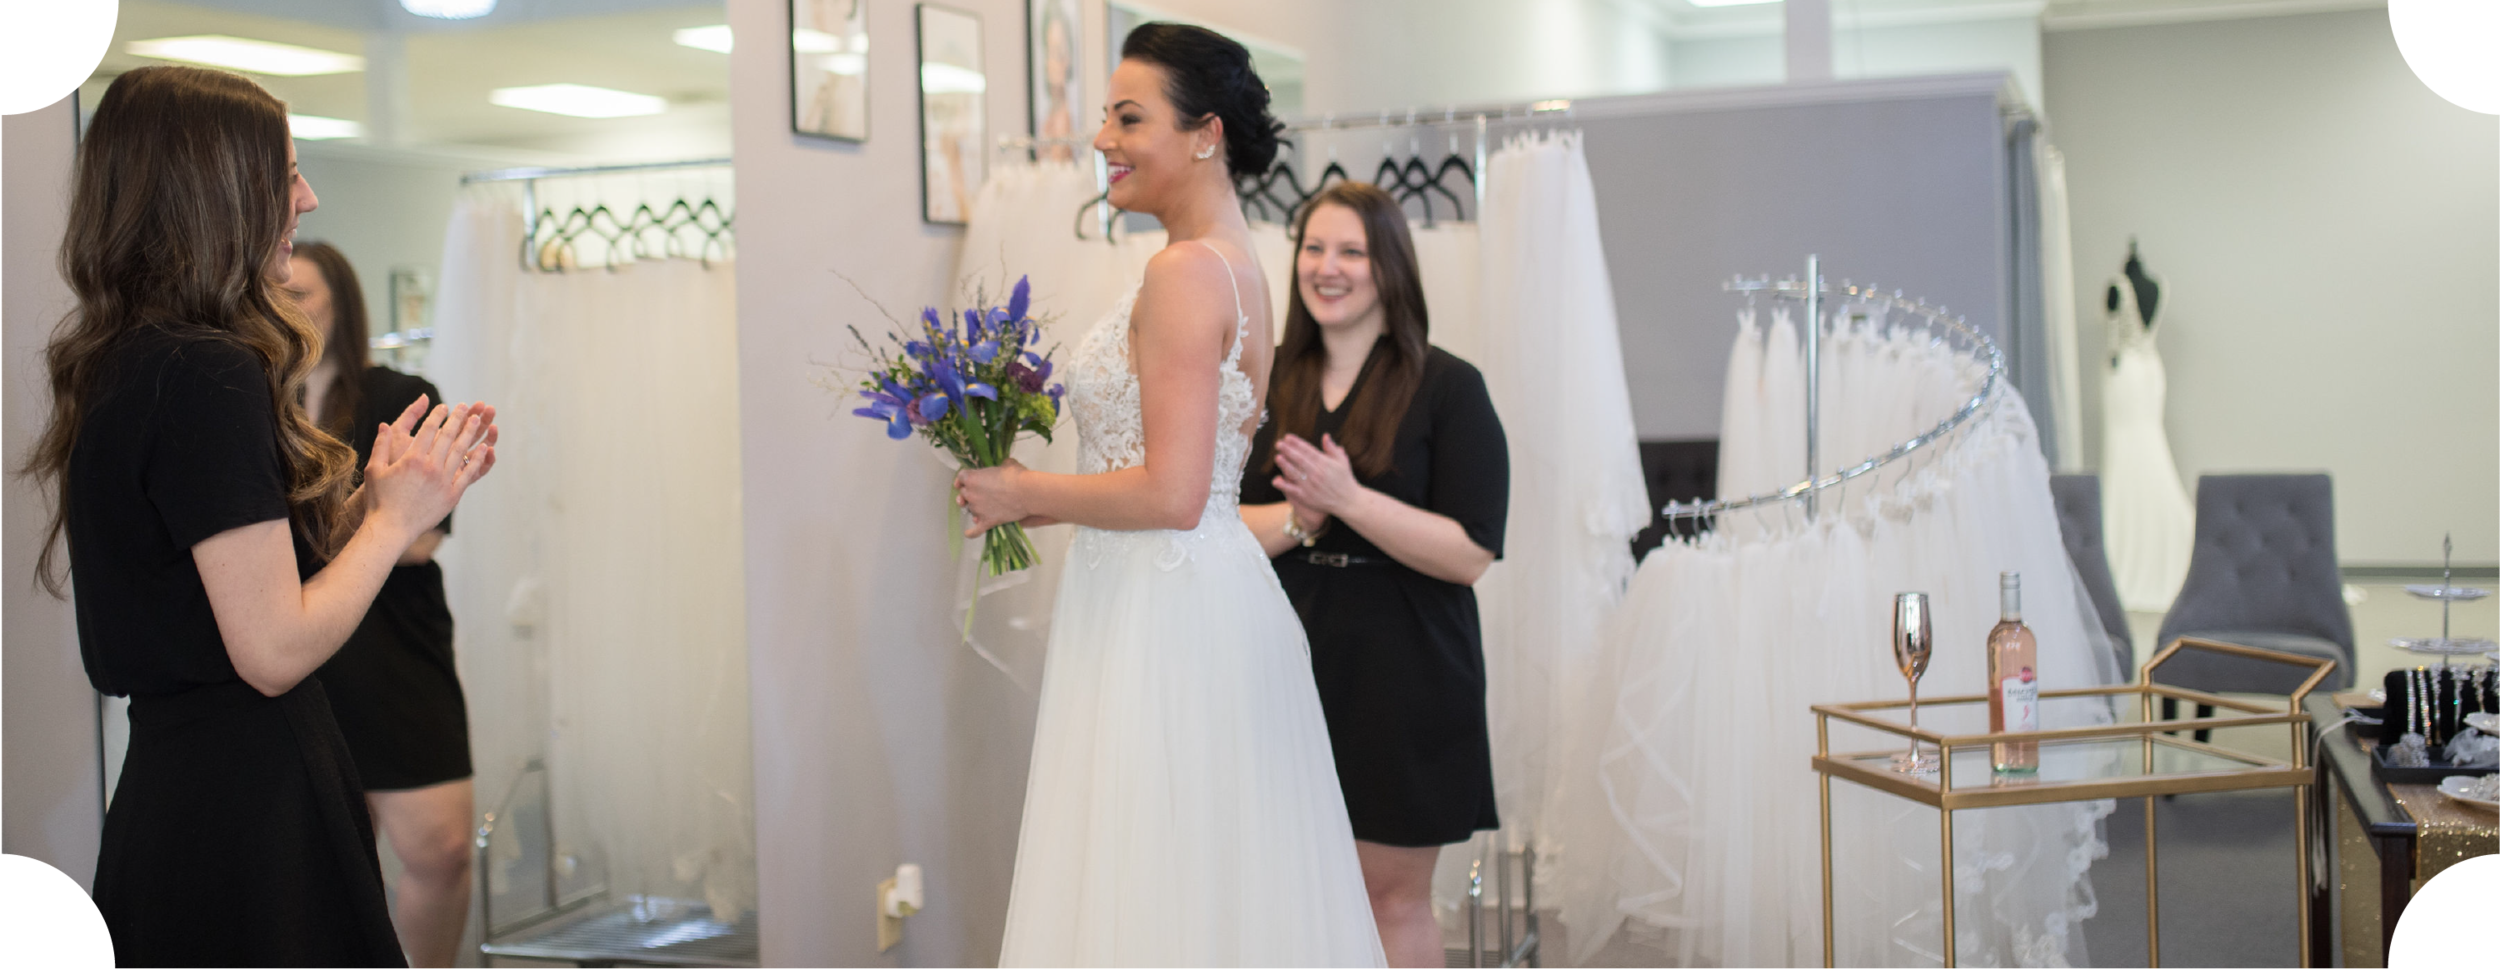 stylists congratulating a bride on finding her perfect dress